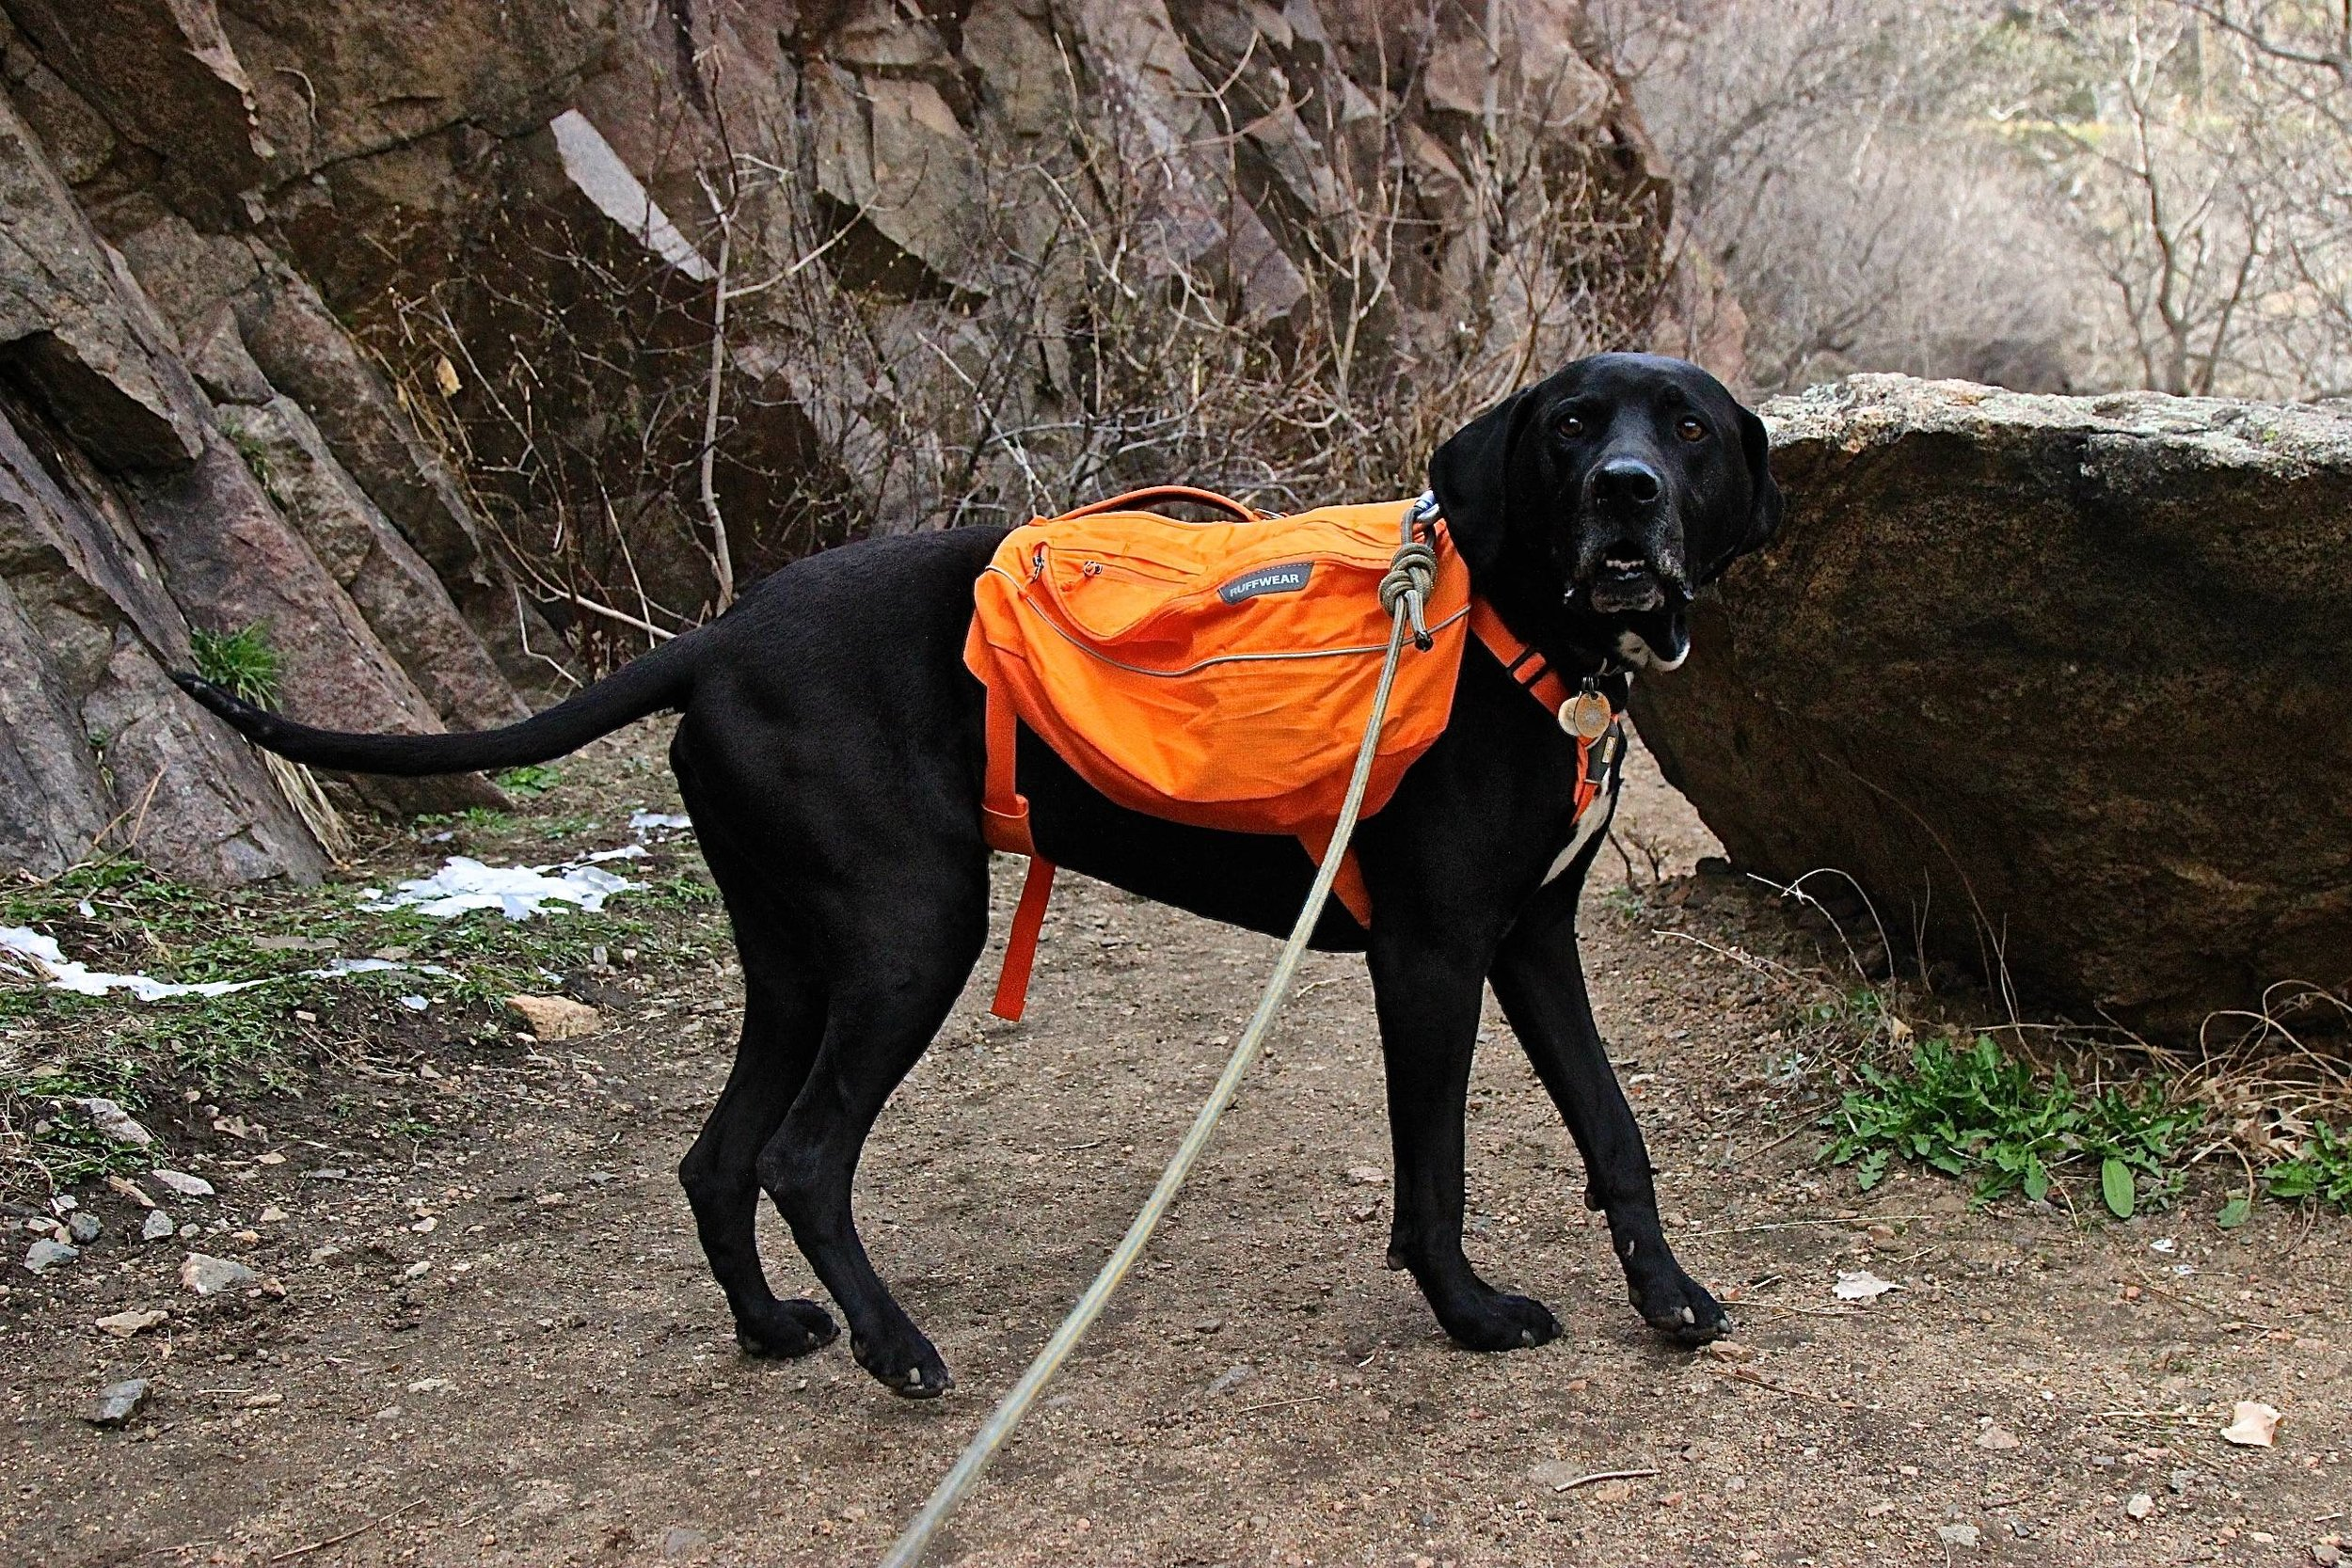 A view of the Ruffwear pack on a dog with leash attached.